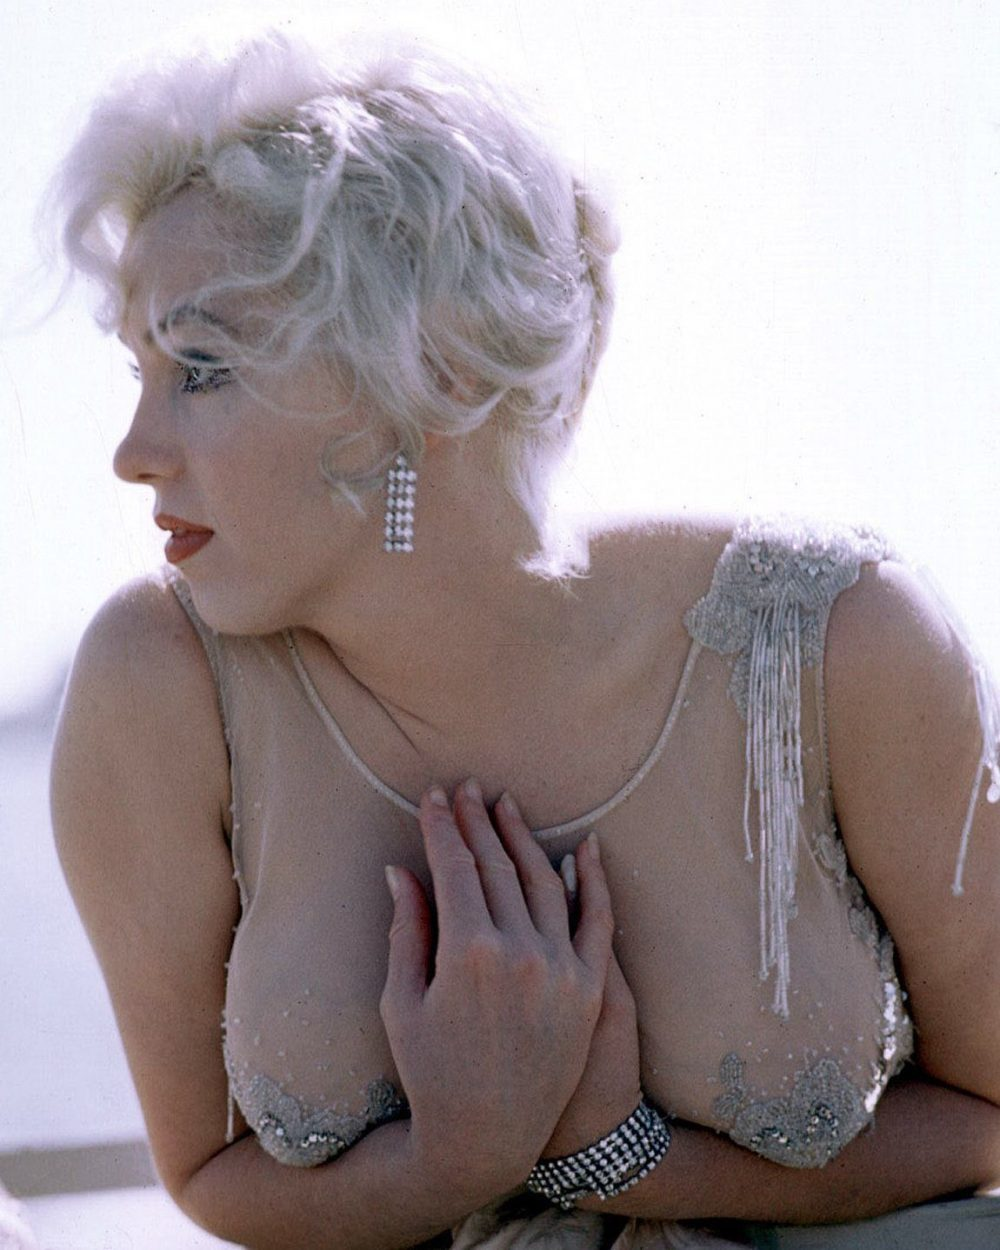 marilyn monroe holding her breasts 1000x1250 Marilyn Monroe holding her breasts